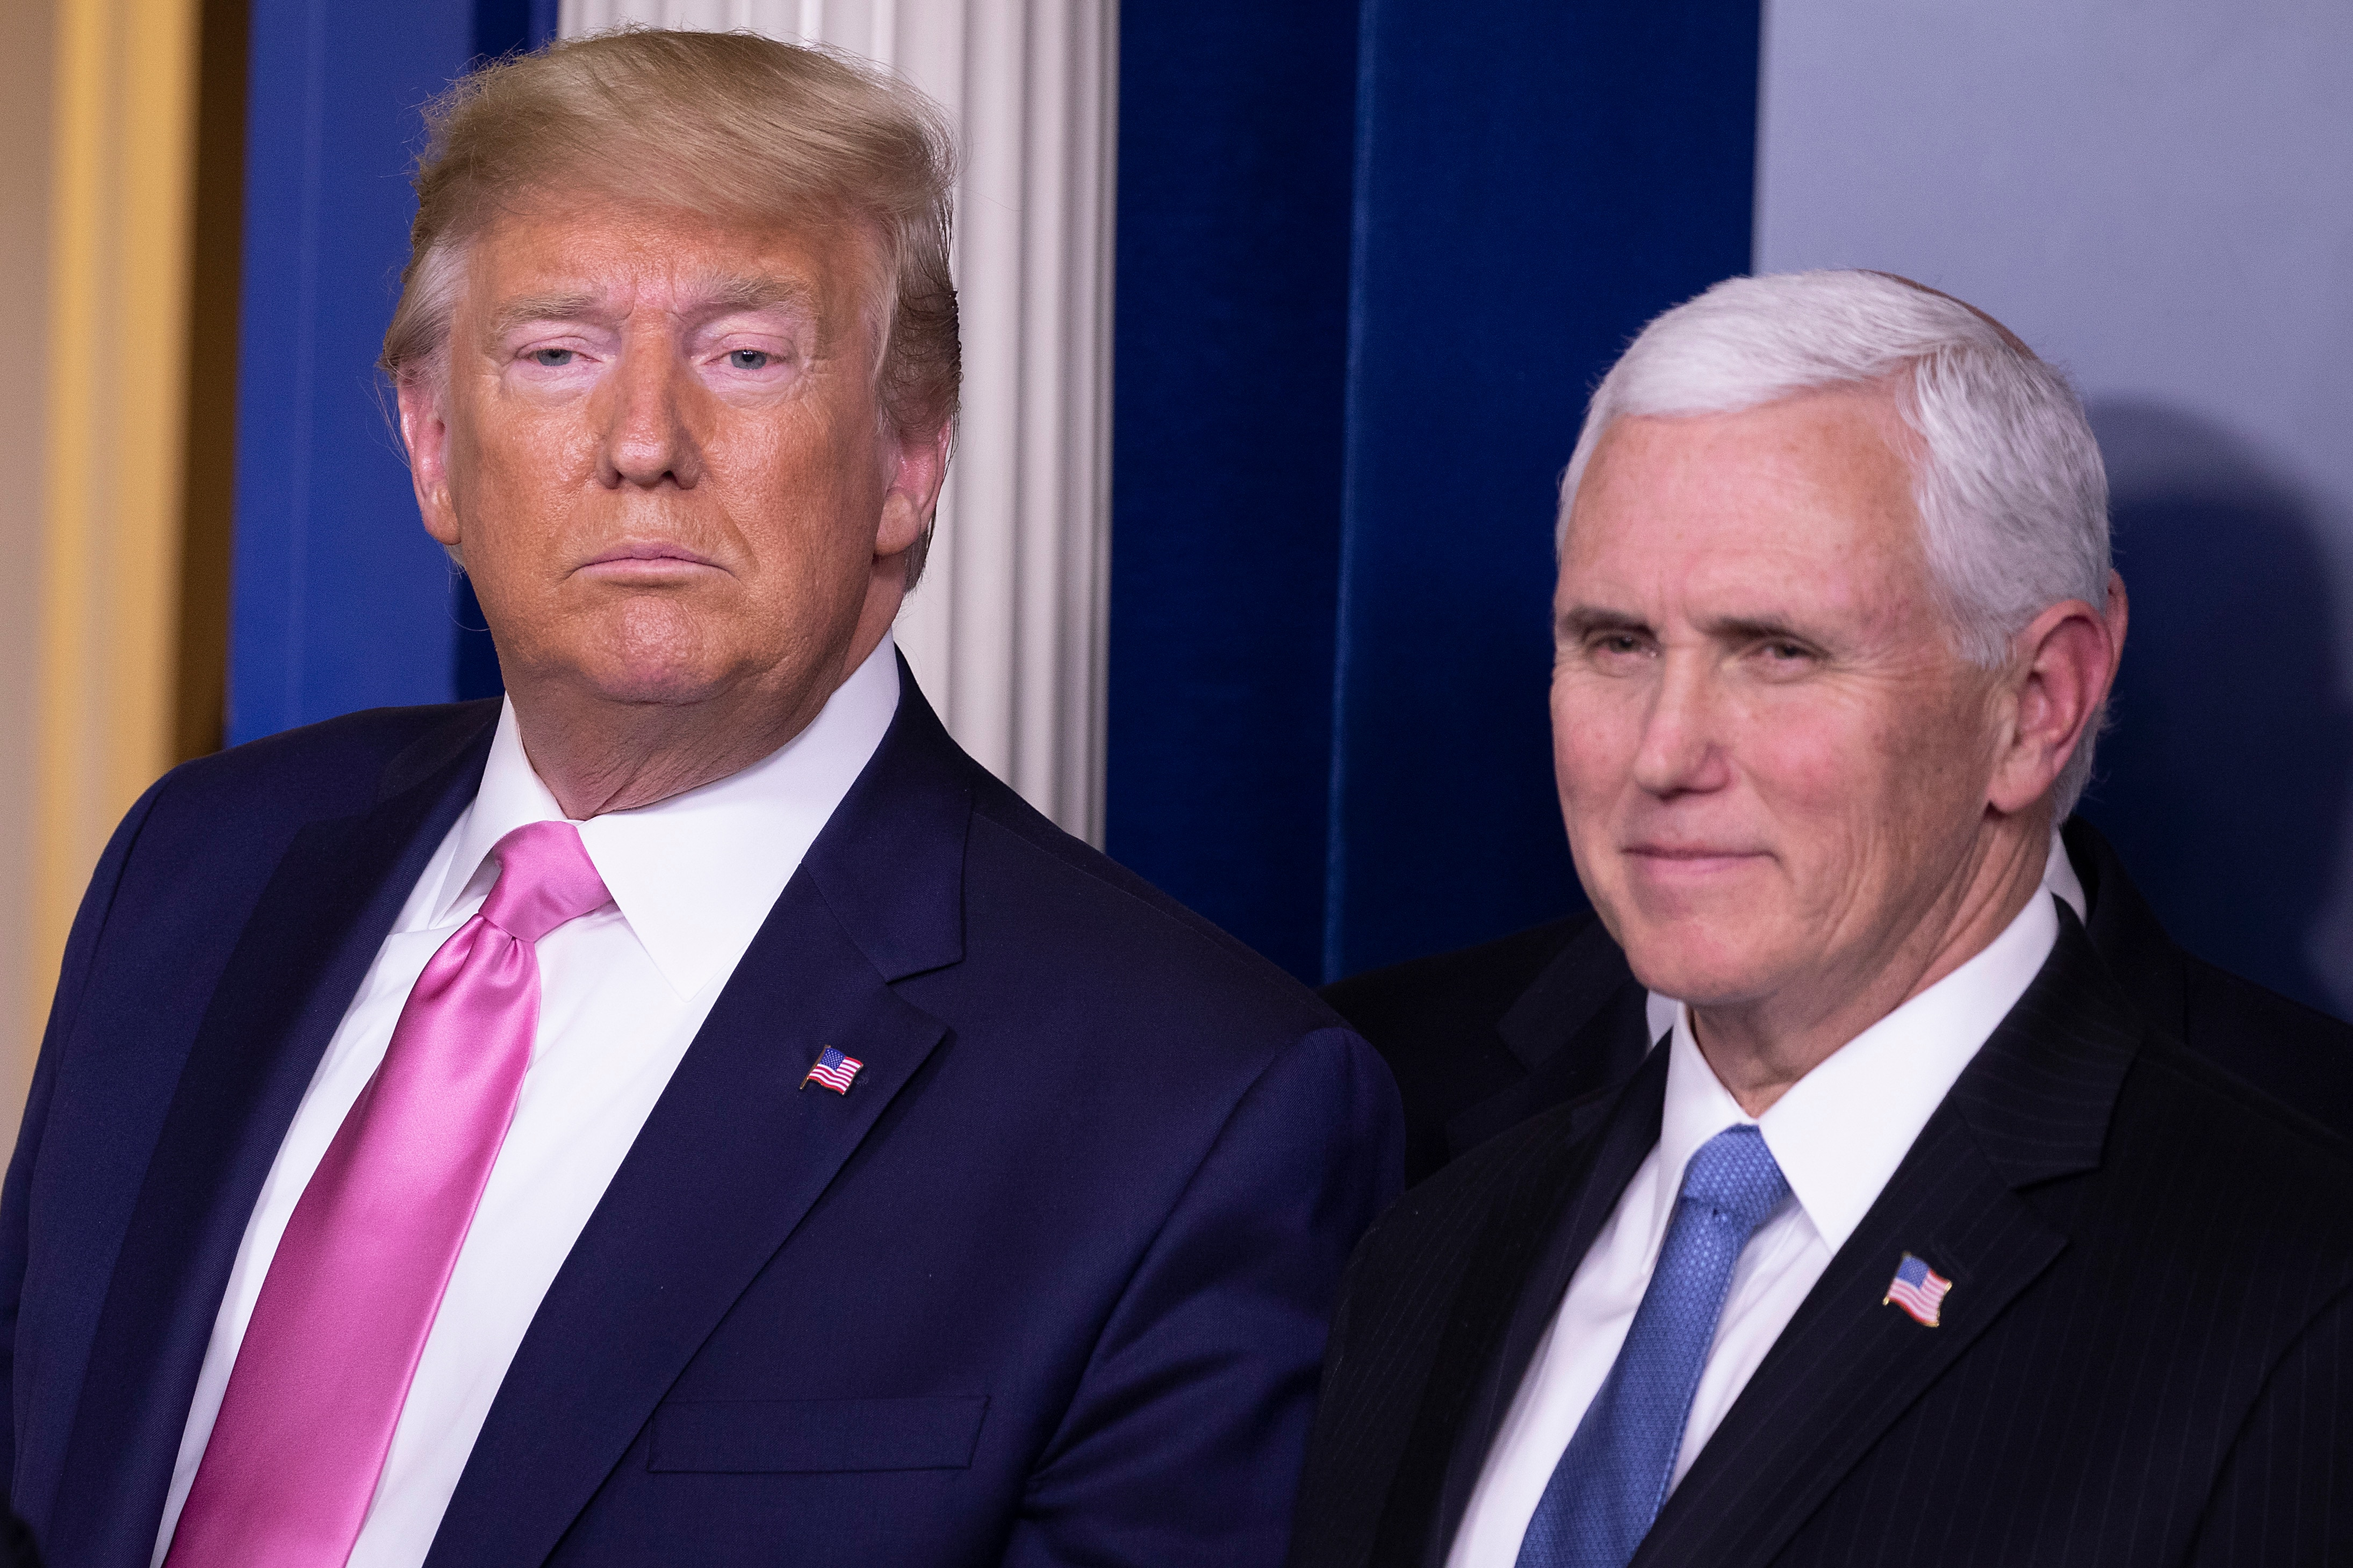 U.S. President Donald Trump looks on after a news conference with Vice President Mike Pence.